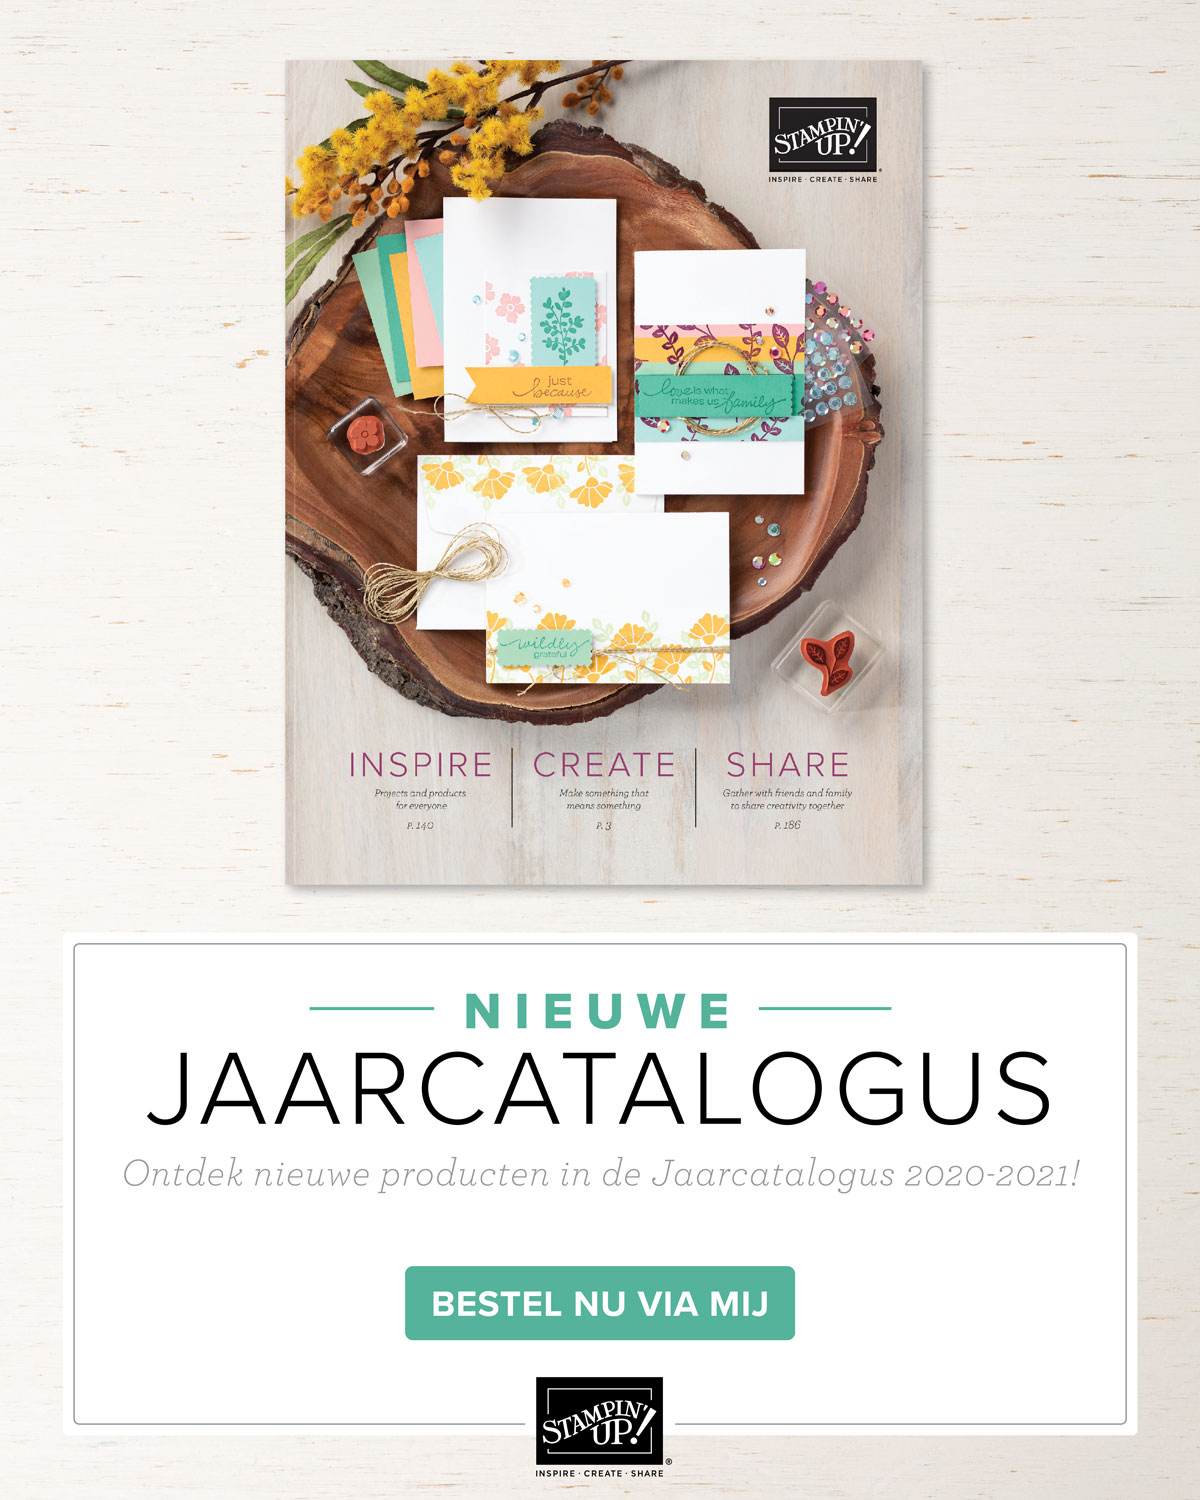 Stampin' Up! jaarcatalogus 2020-2021